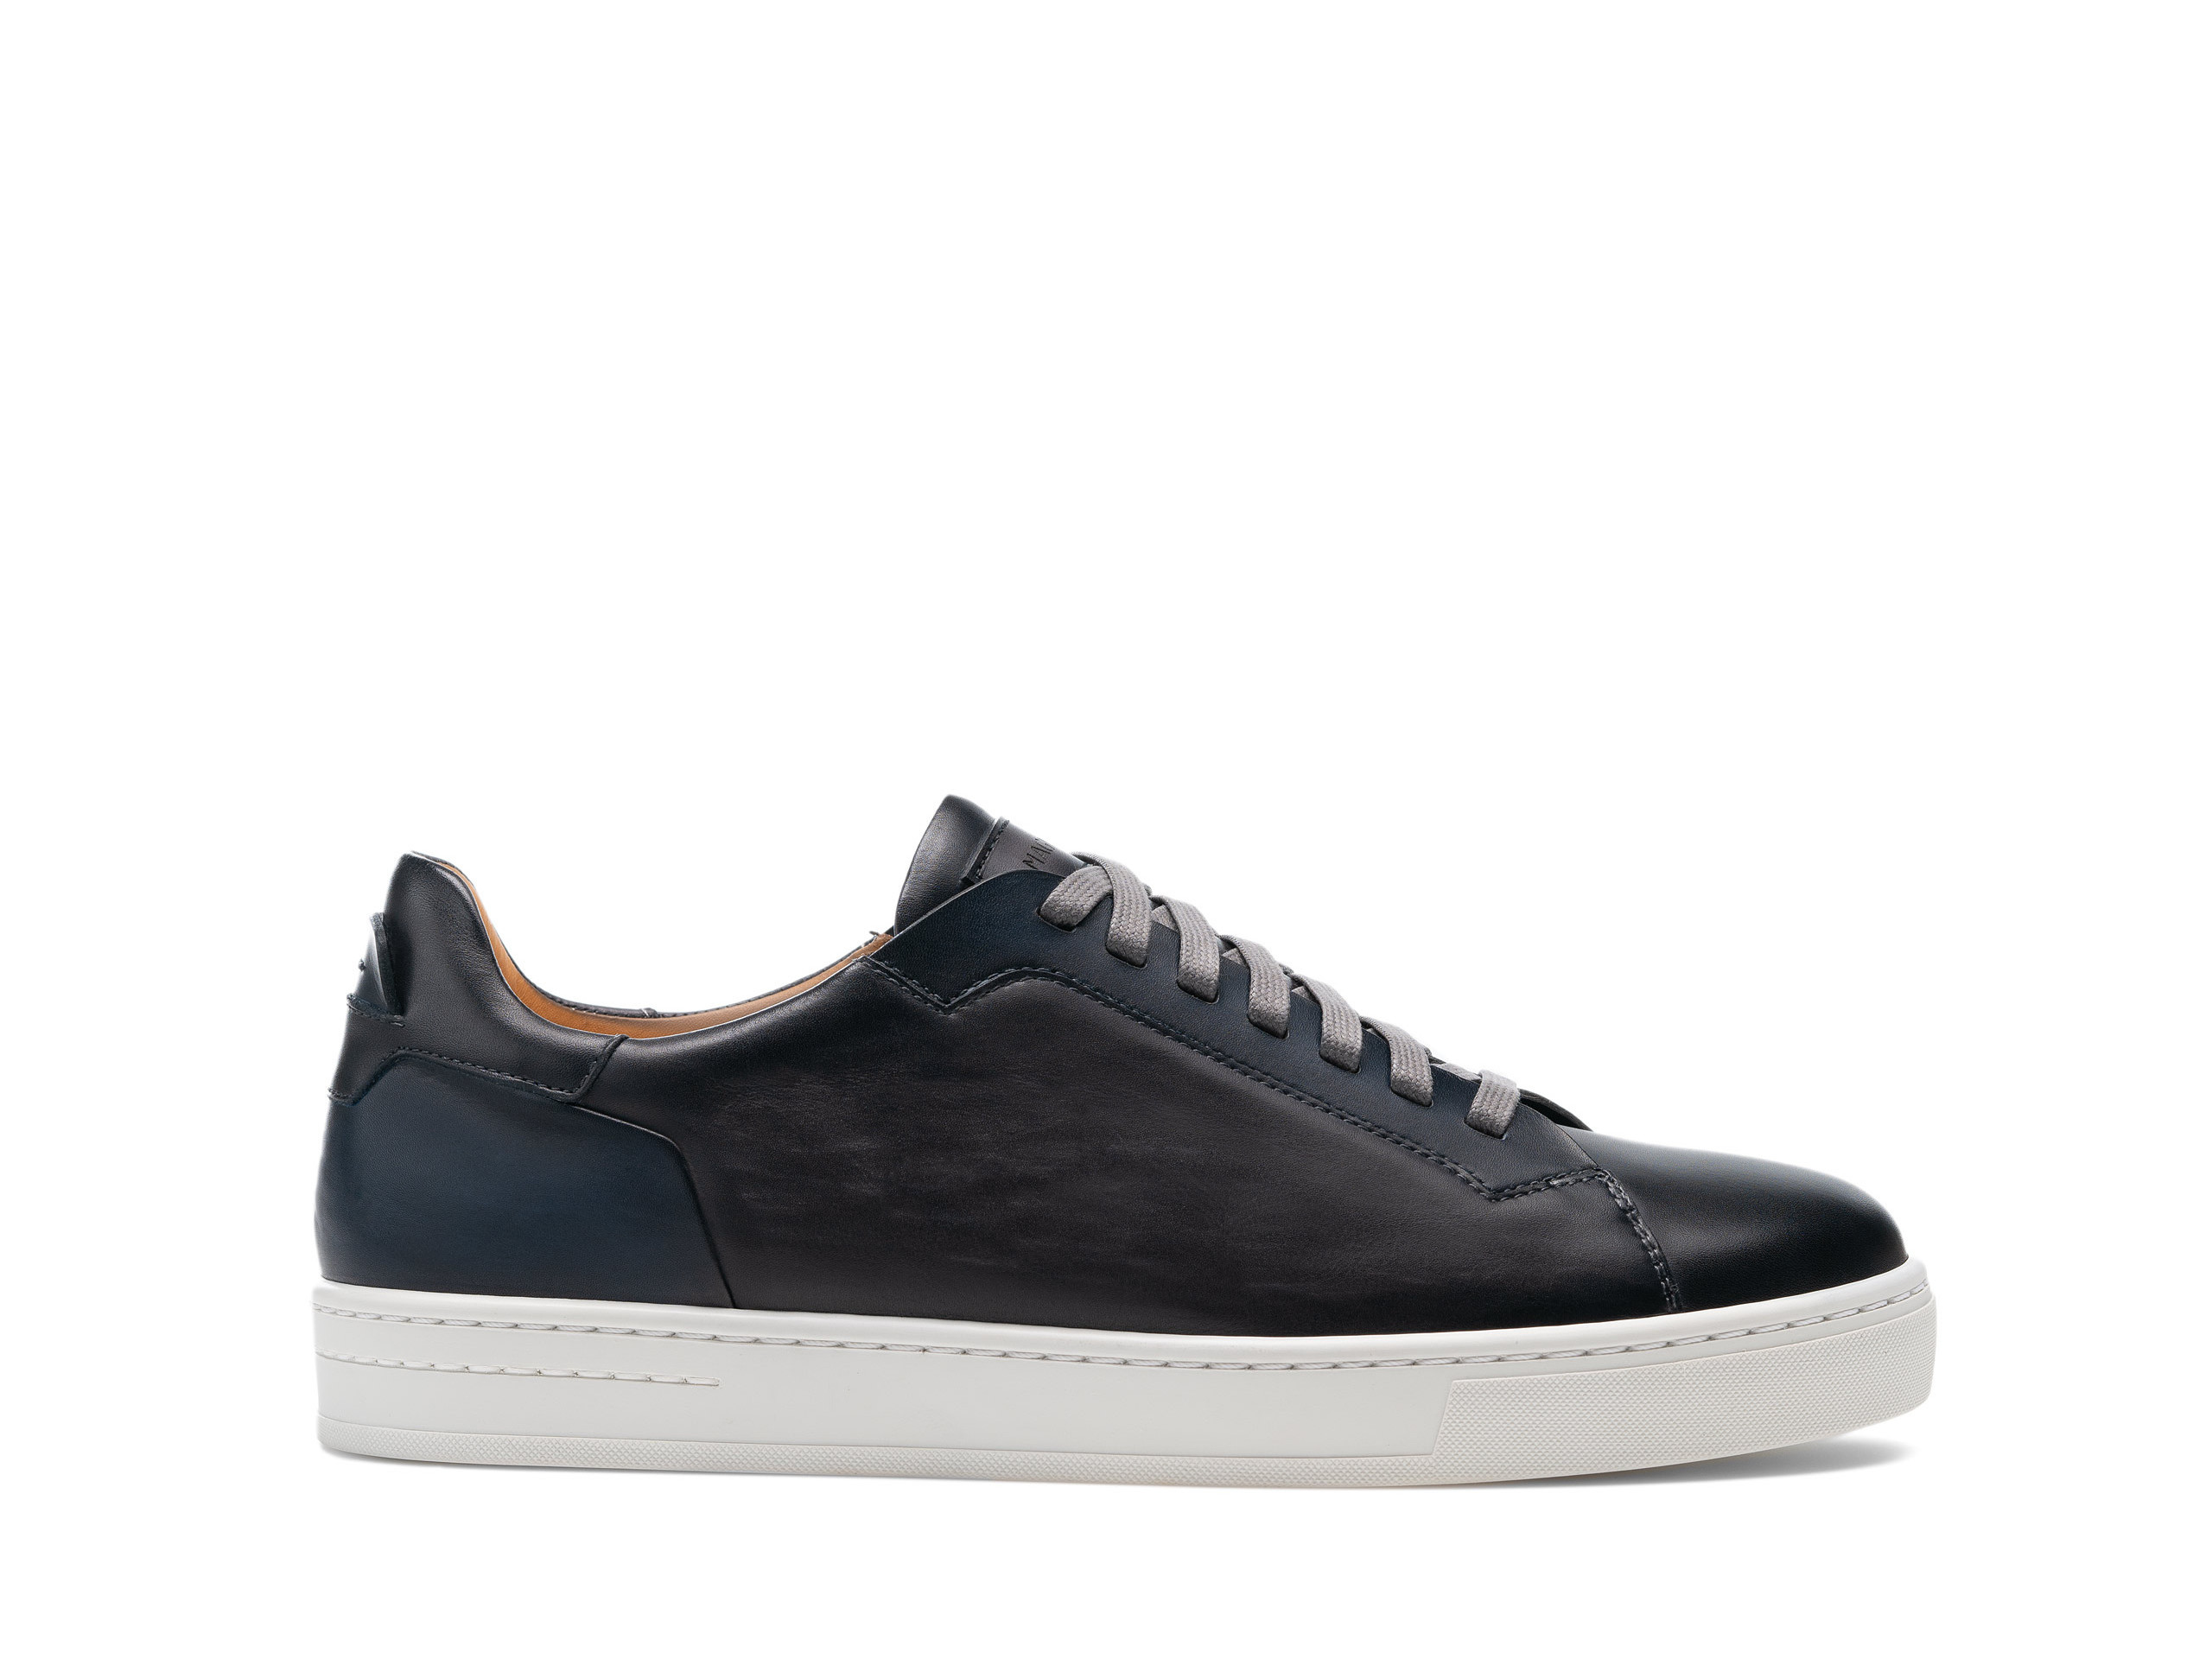 Side view of the Magnanni Amadeo Grey and Navy Men's Sneakers